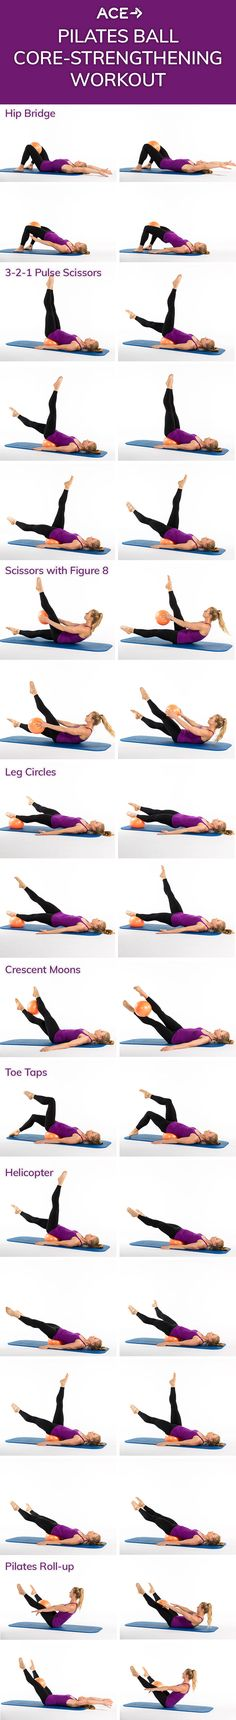 105 Best Ace Core Exercises Images Core Workout Exercise Workout